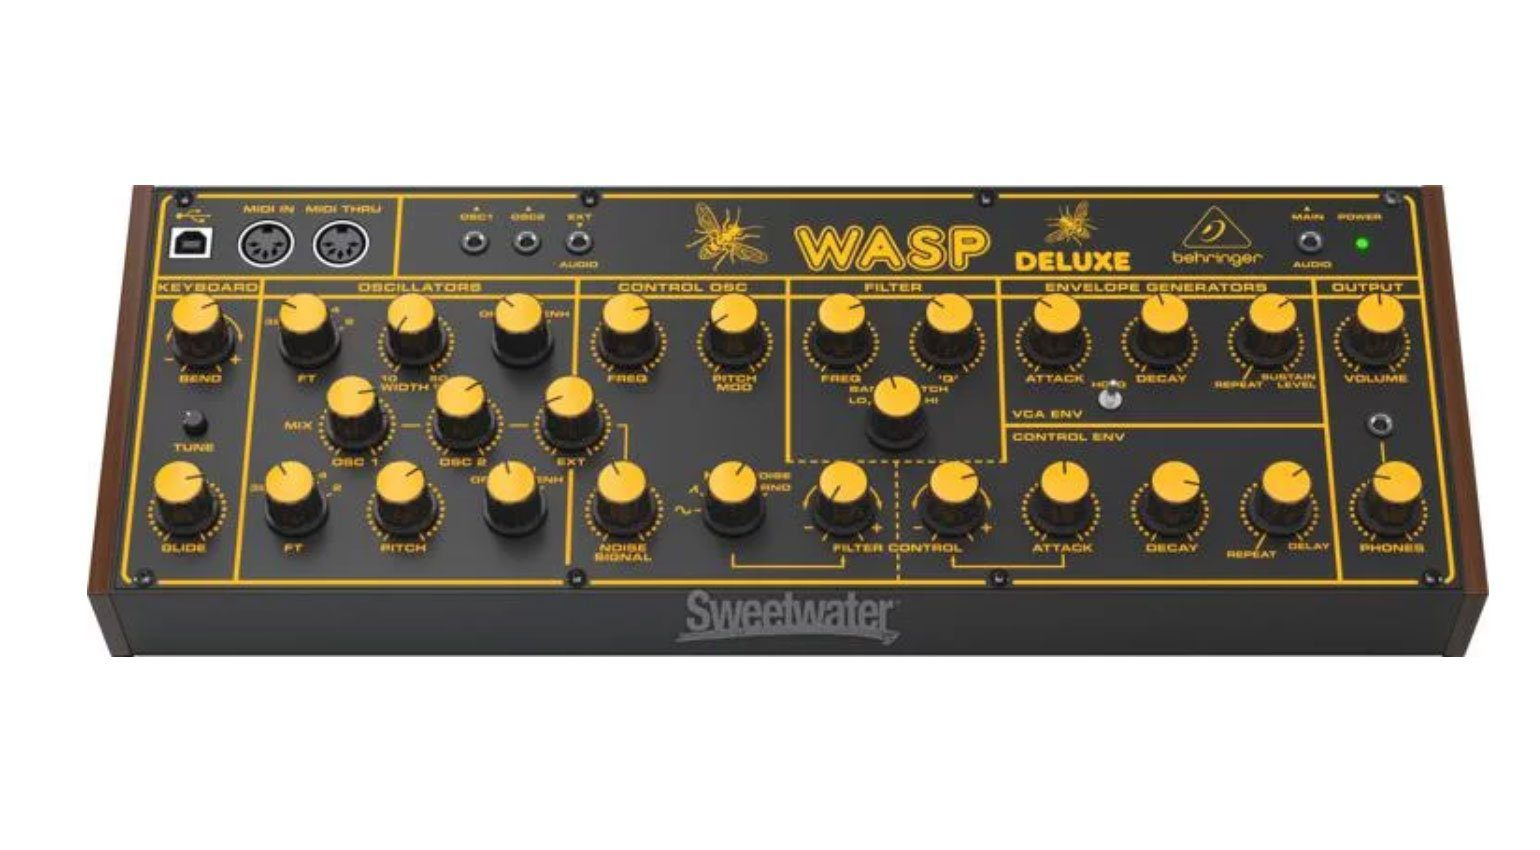 Behringer Wasp Deluxe Synthesizer